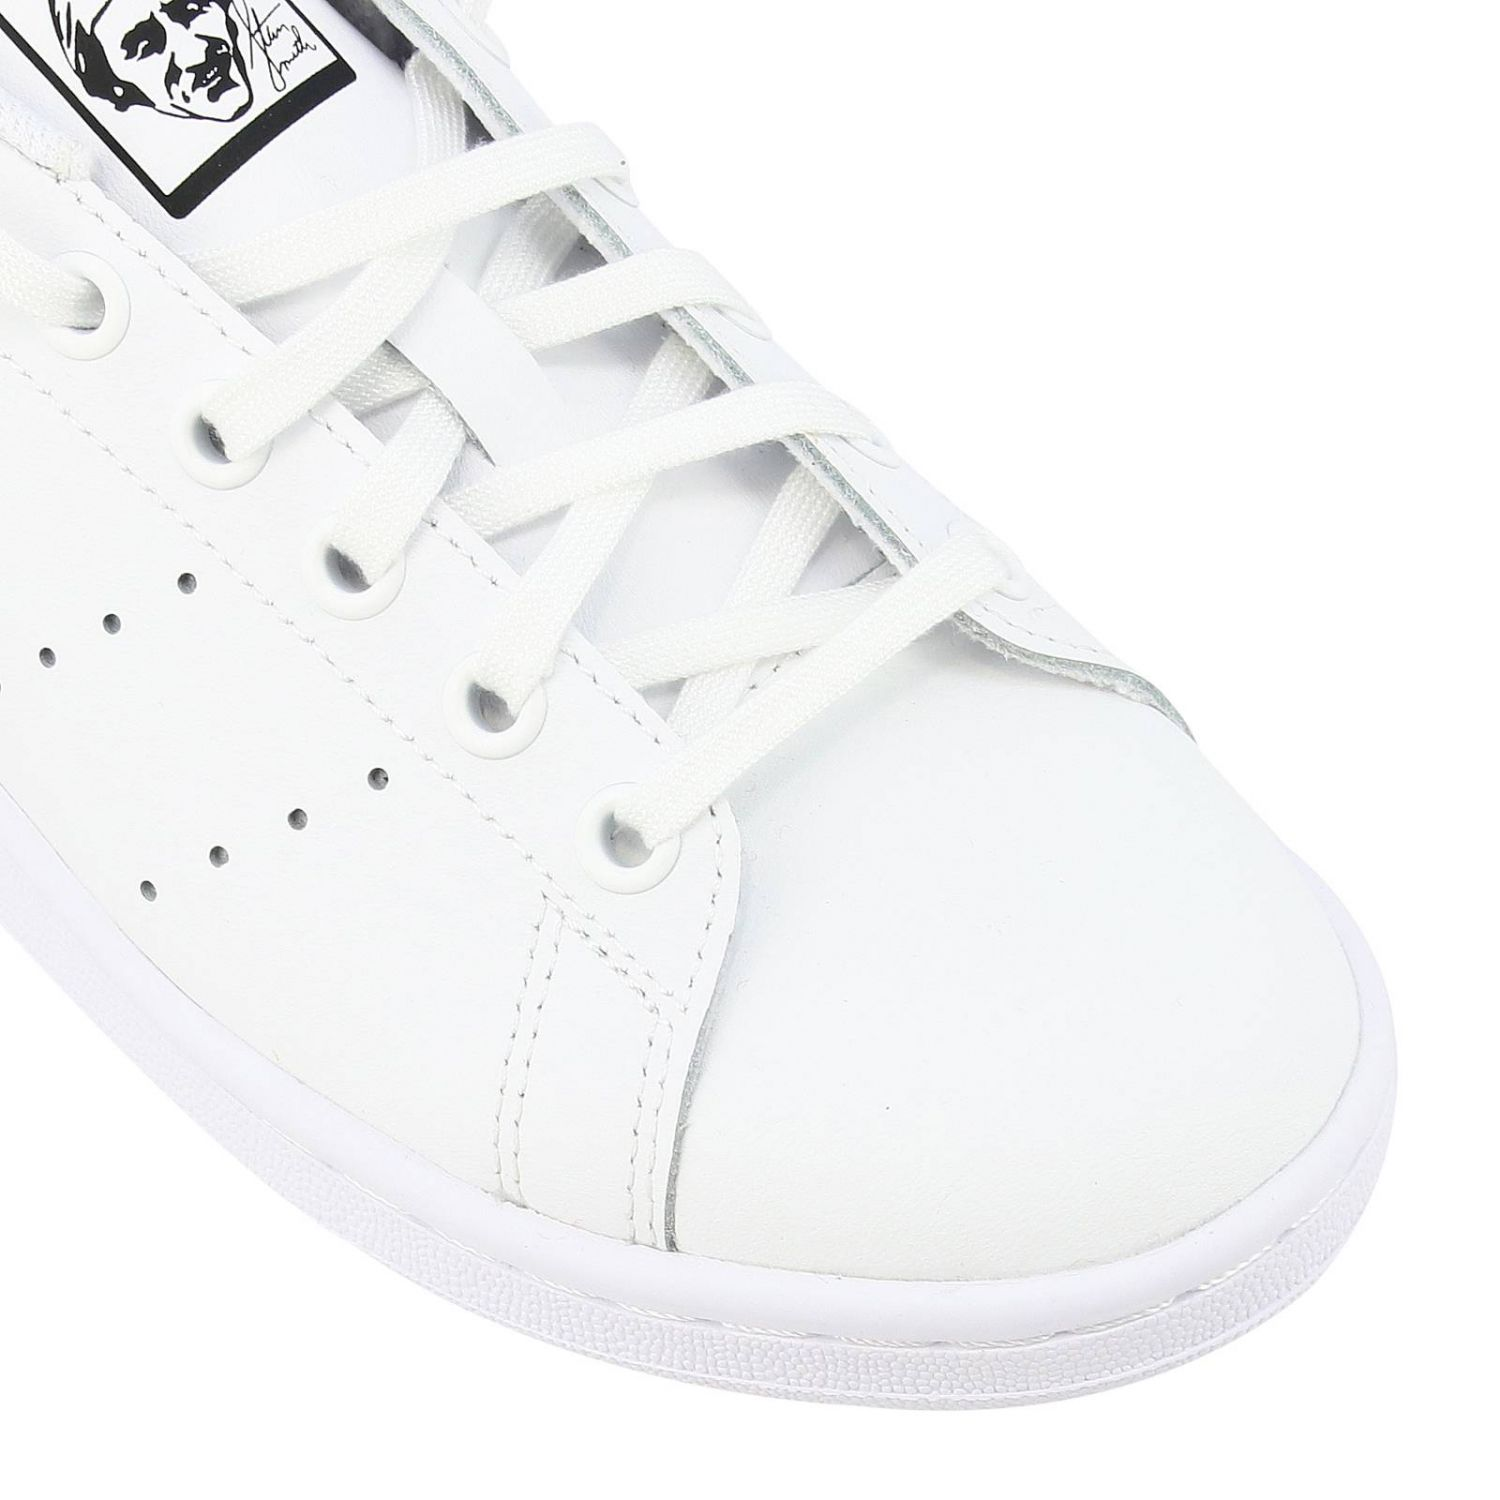 鞋履 Adidas Originals: Adidas Originals Stan Smith 真皮对比后跟运动鞋 白色 4